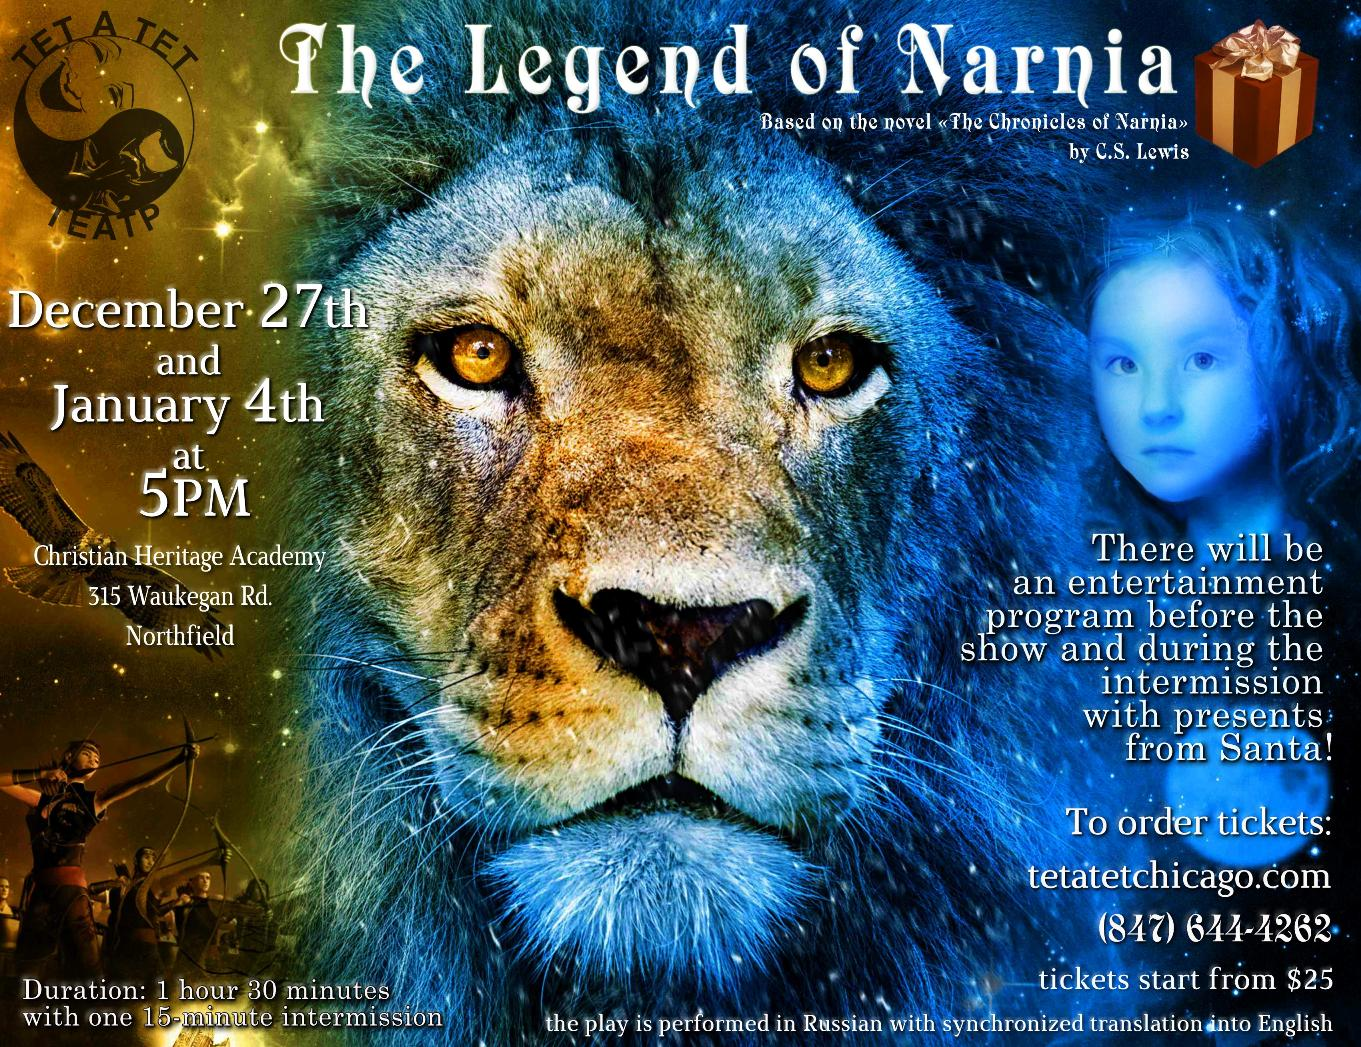 The Legend of Narnia